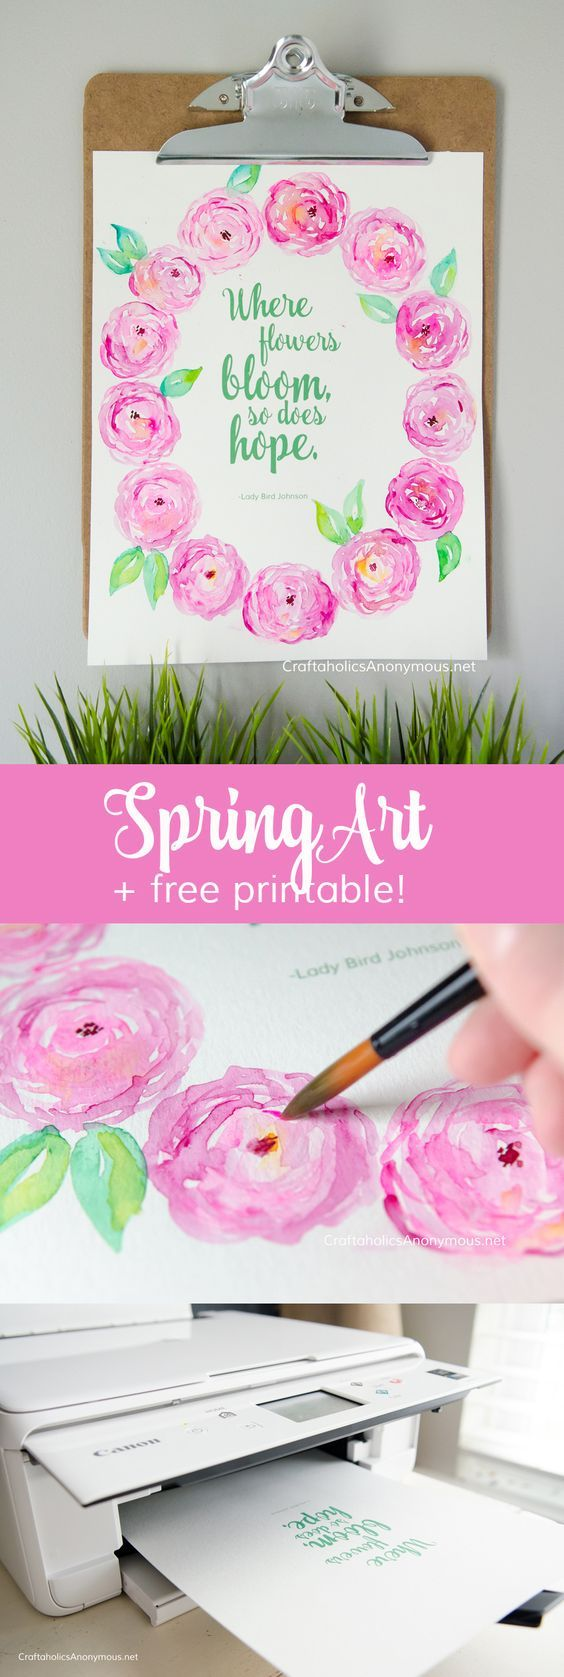 Watercolor crafts are a fun idea to learn and enjoy. Create your own cards, or c...